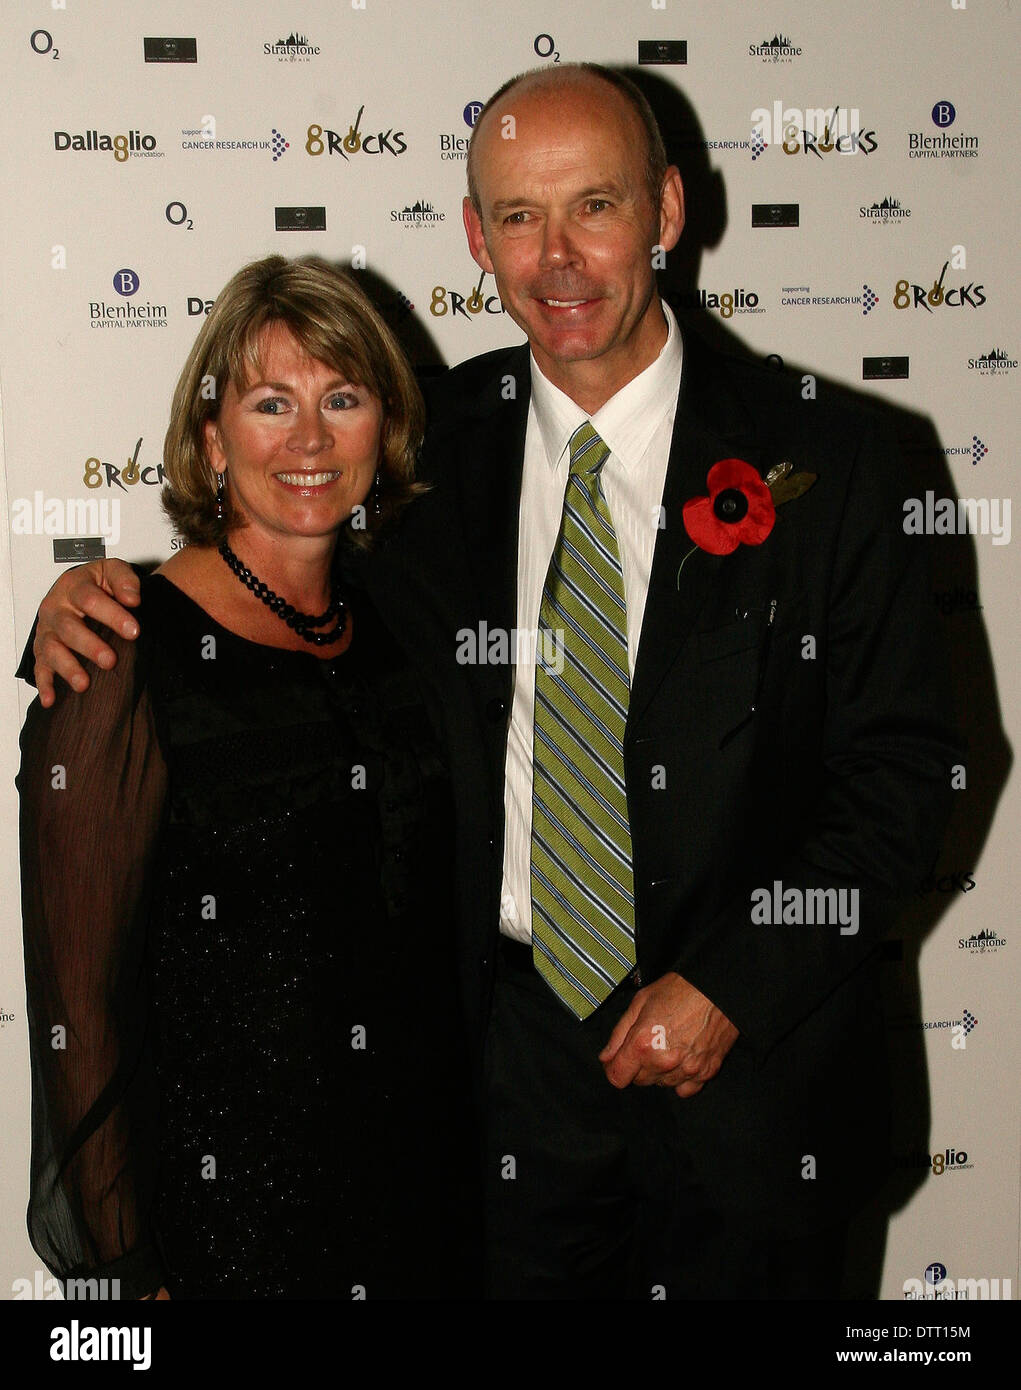 Former Rugby coach Sir Clive Woodward with wife at the Cnacer Research Charity event in London - Stock Image